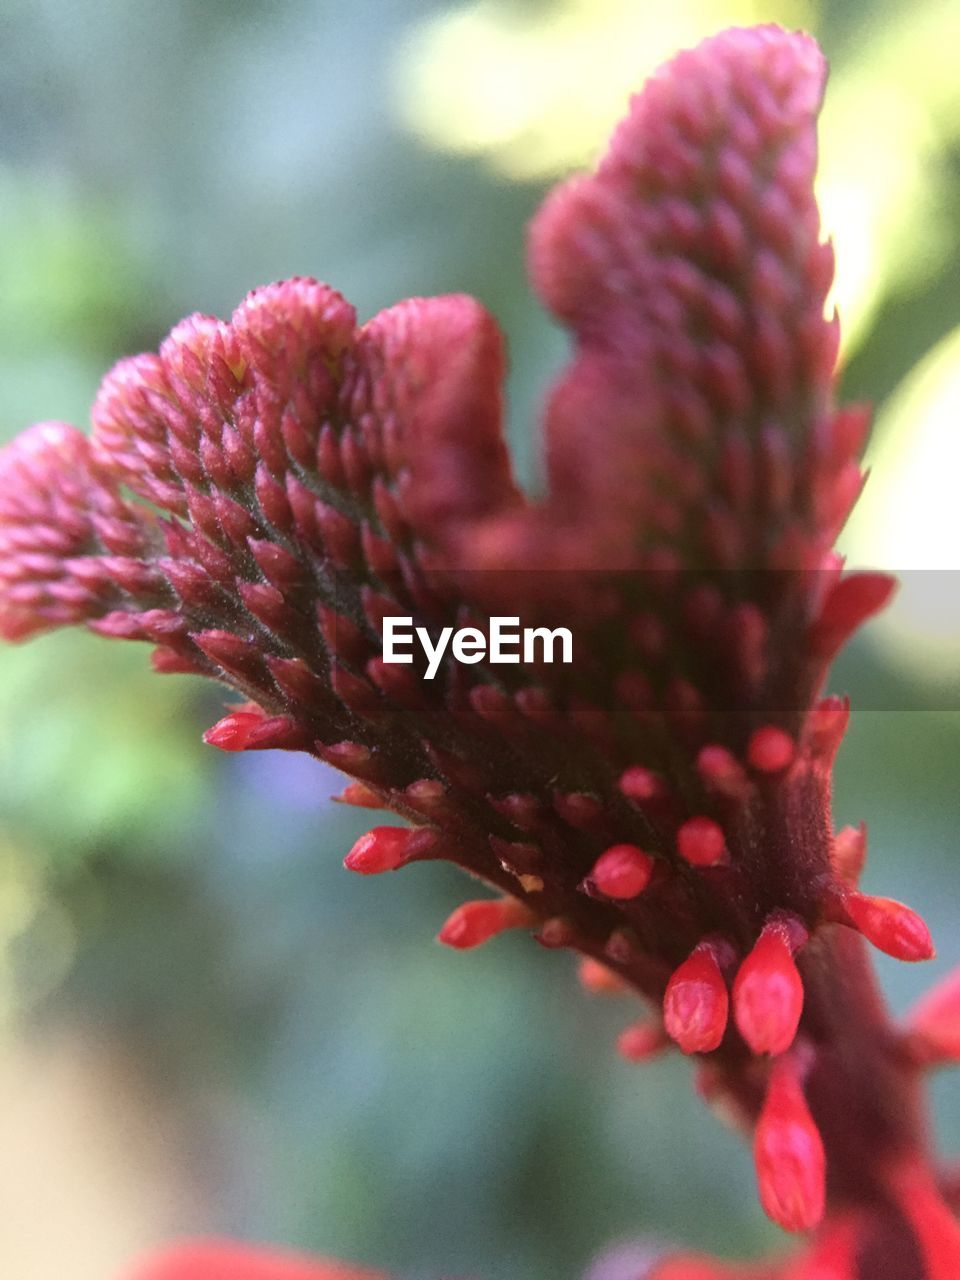 flower, red, growth, nature, fragility, petal, beauty in nature, pink color, close-up, plant, focus on foreground, blooming, flower head, outdoors, no people, freshness, day, eastern purple coneflower